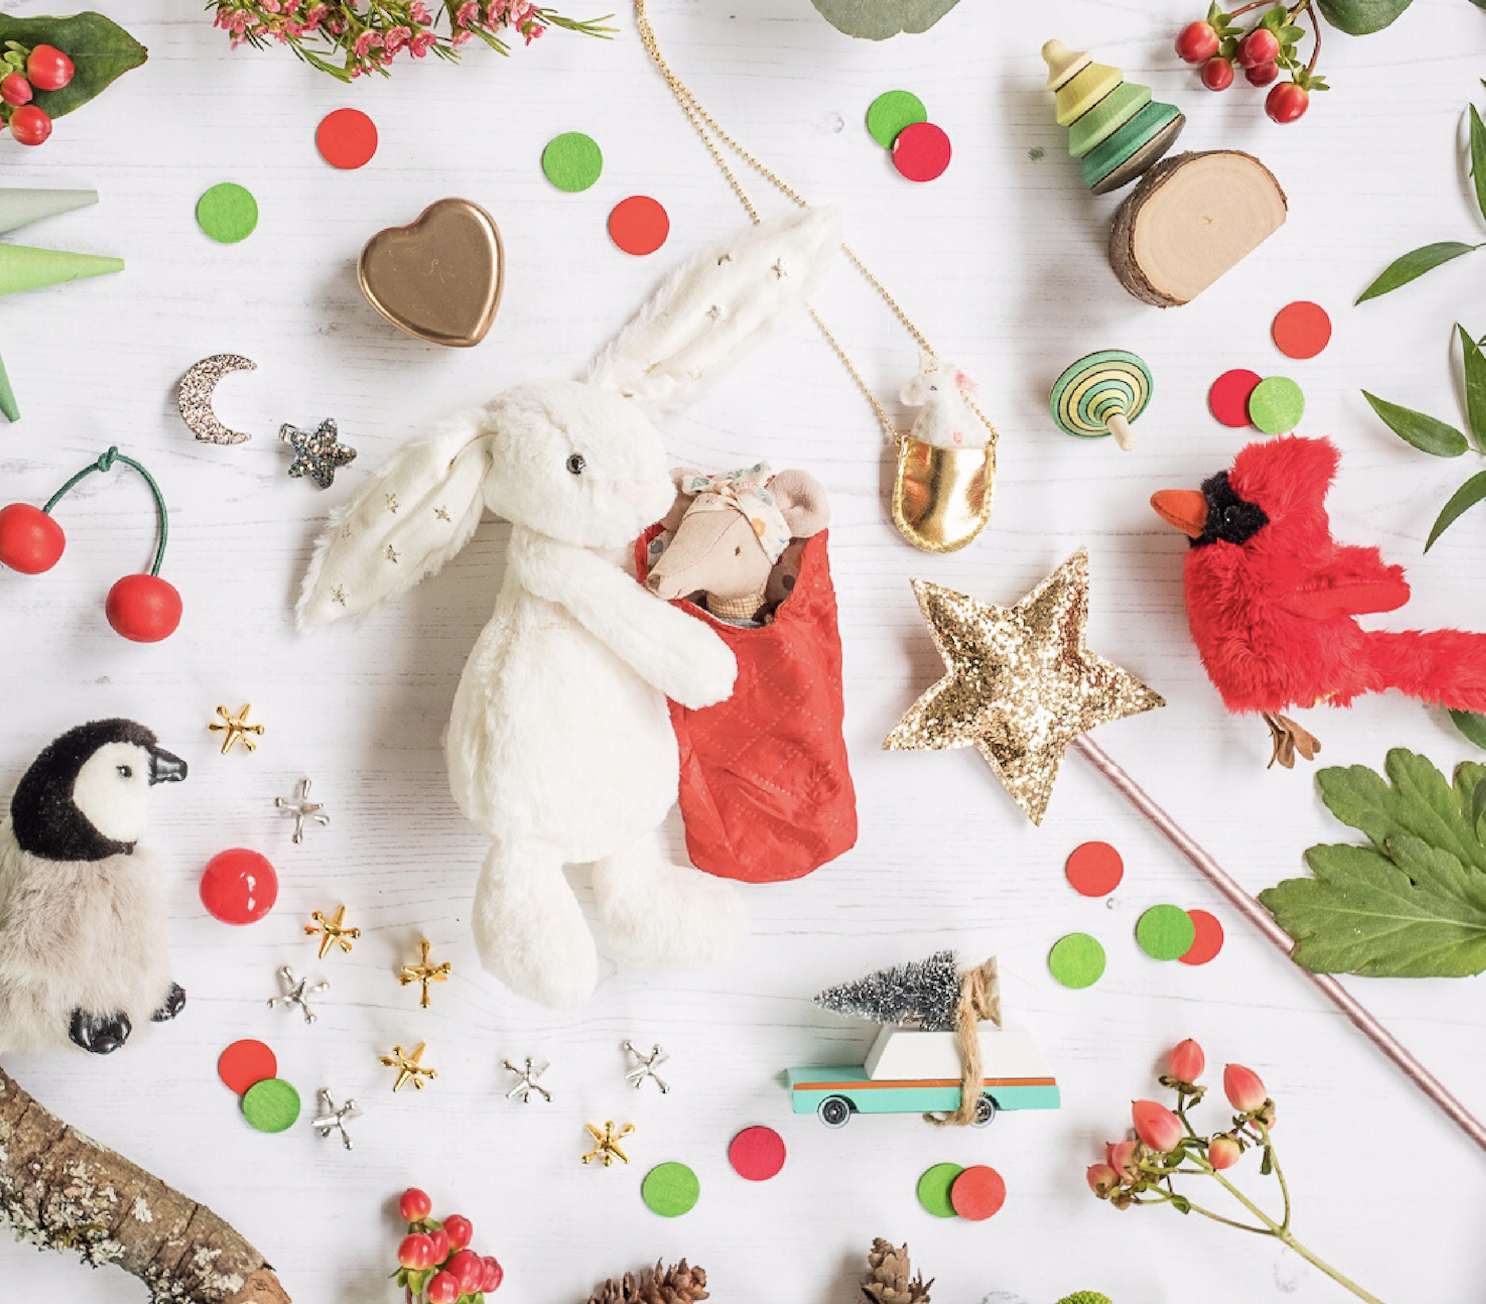 Huge List of Canadian Small Shops To Support This Christmas Season. Huge List of Kids Toys, Kids Clothing, Home, Womens Clothing, Mens Presents and Stocking Stuffers from Canadian Small Shops. Shop Small This Christmas Season.